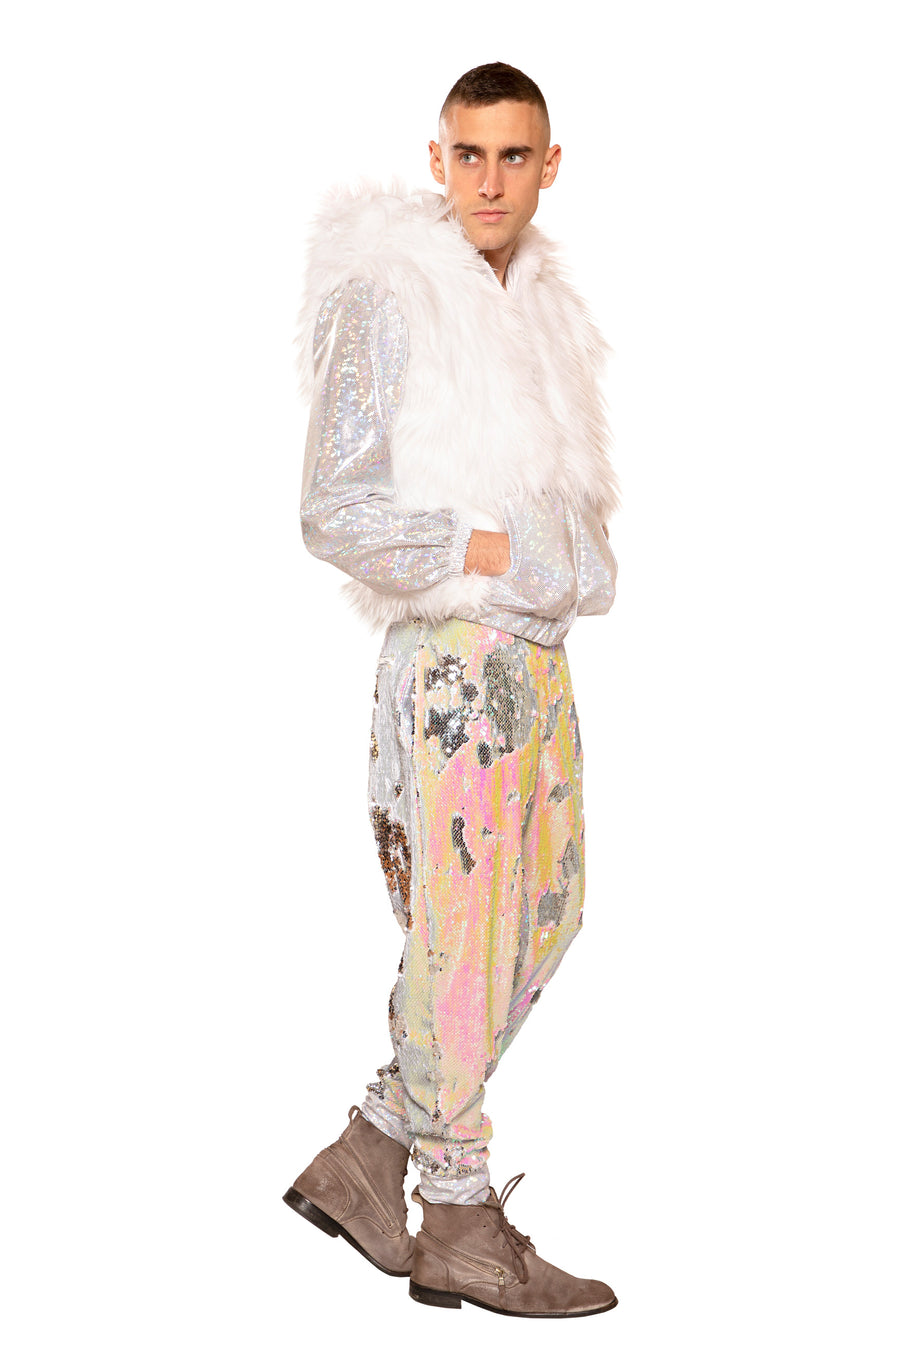 FF215 - LIGHT-UP METALLIC & FAUX FUR JACKET